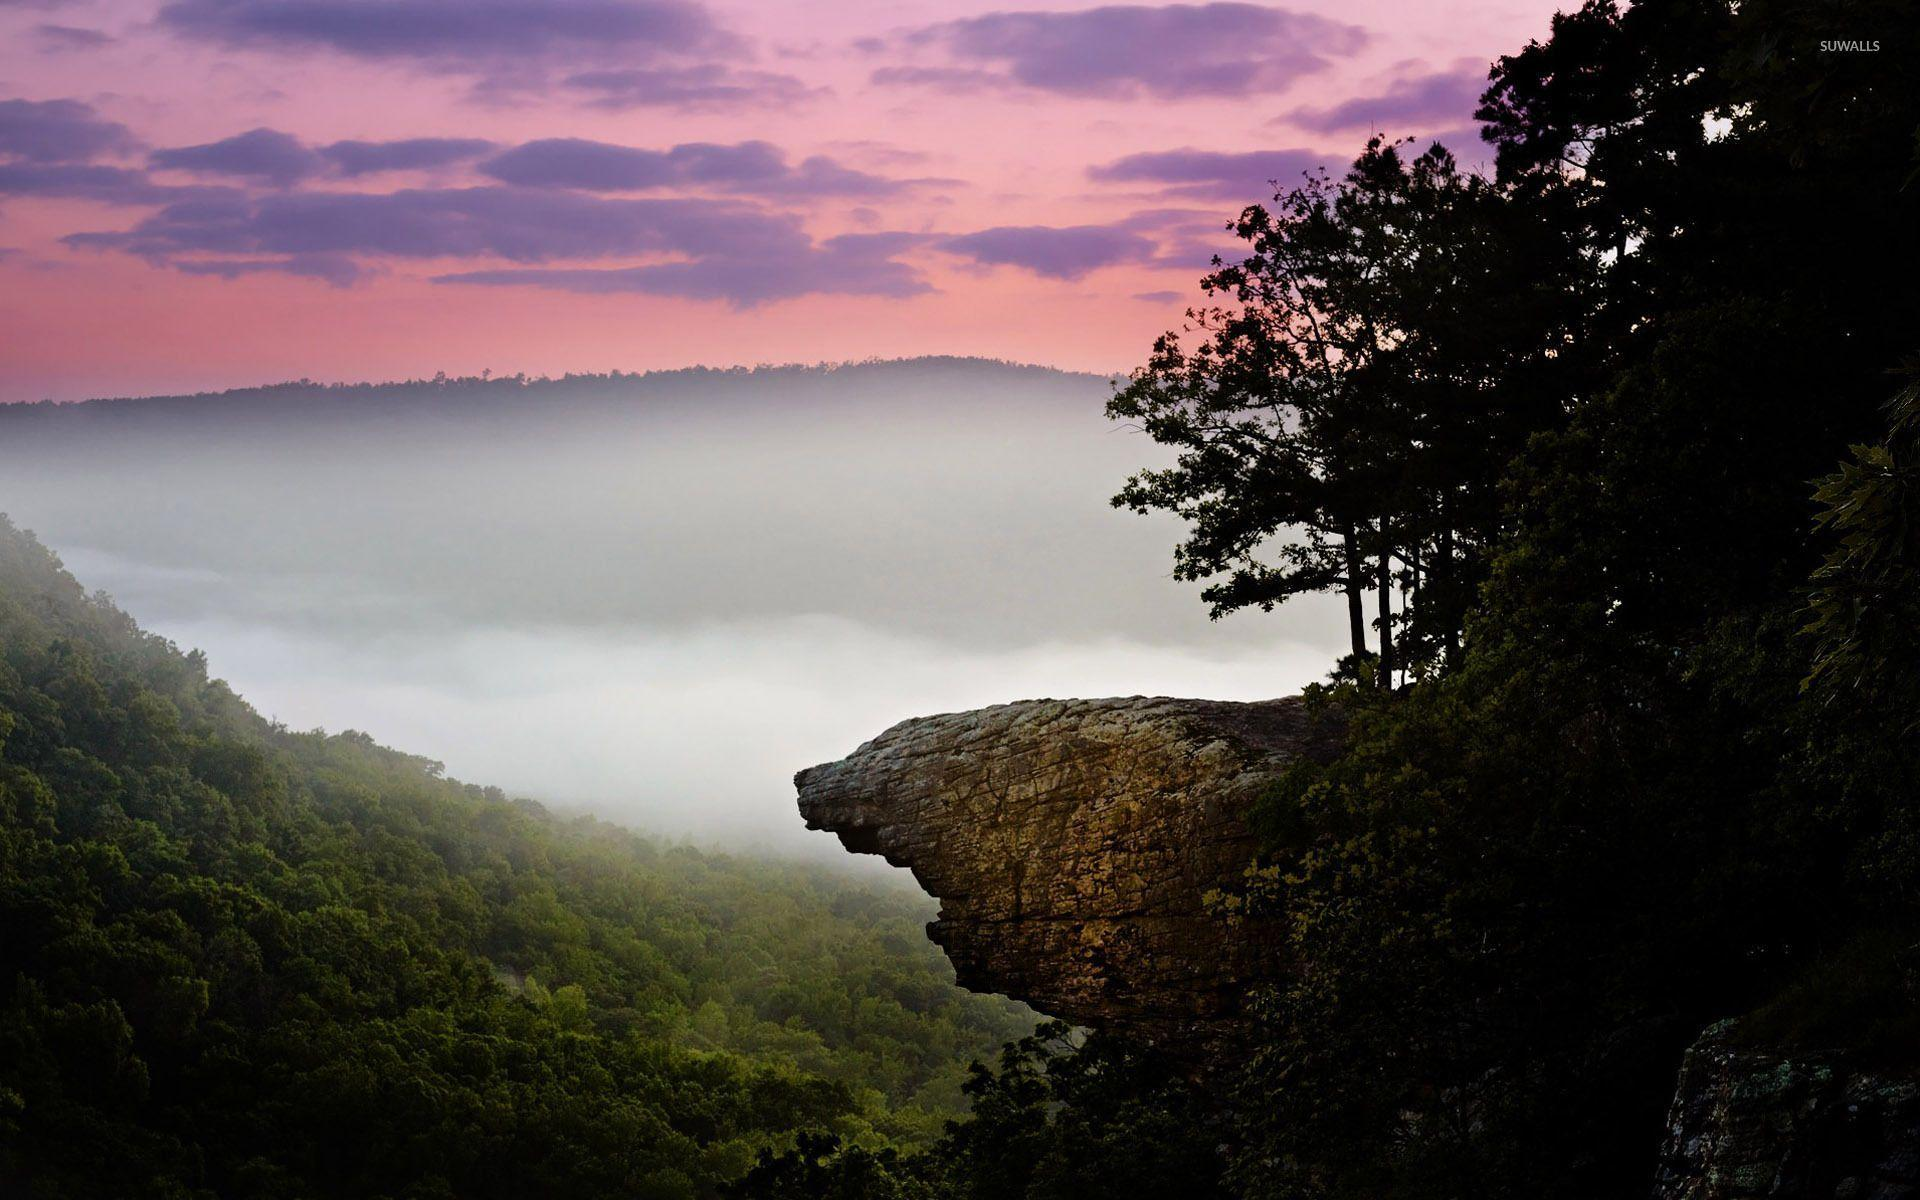 Whitaker Point, Arkansas wallpaper - Nature wallpapers - #26139